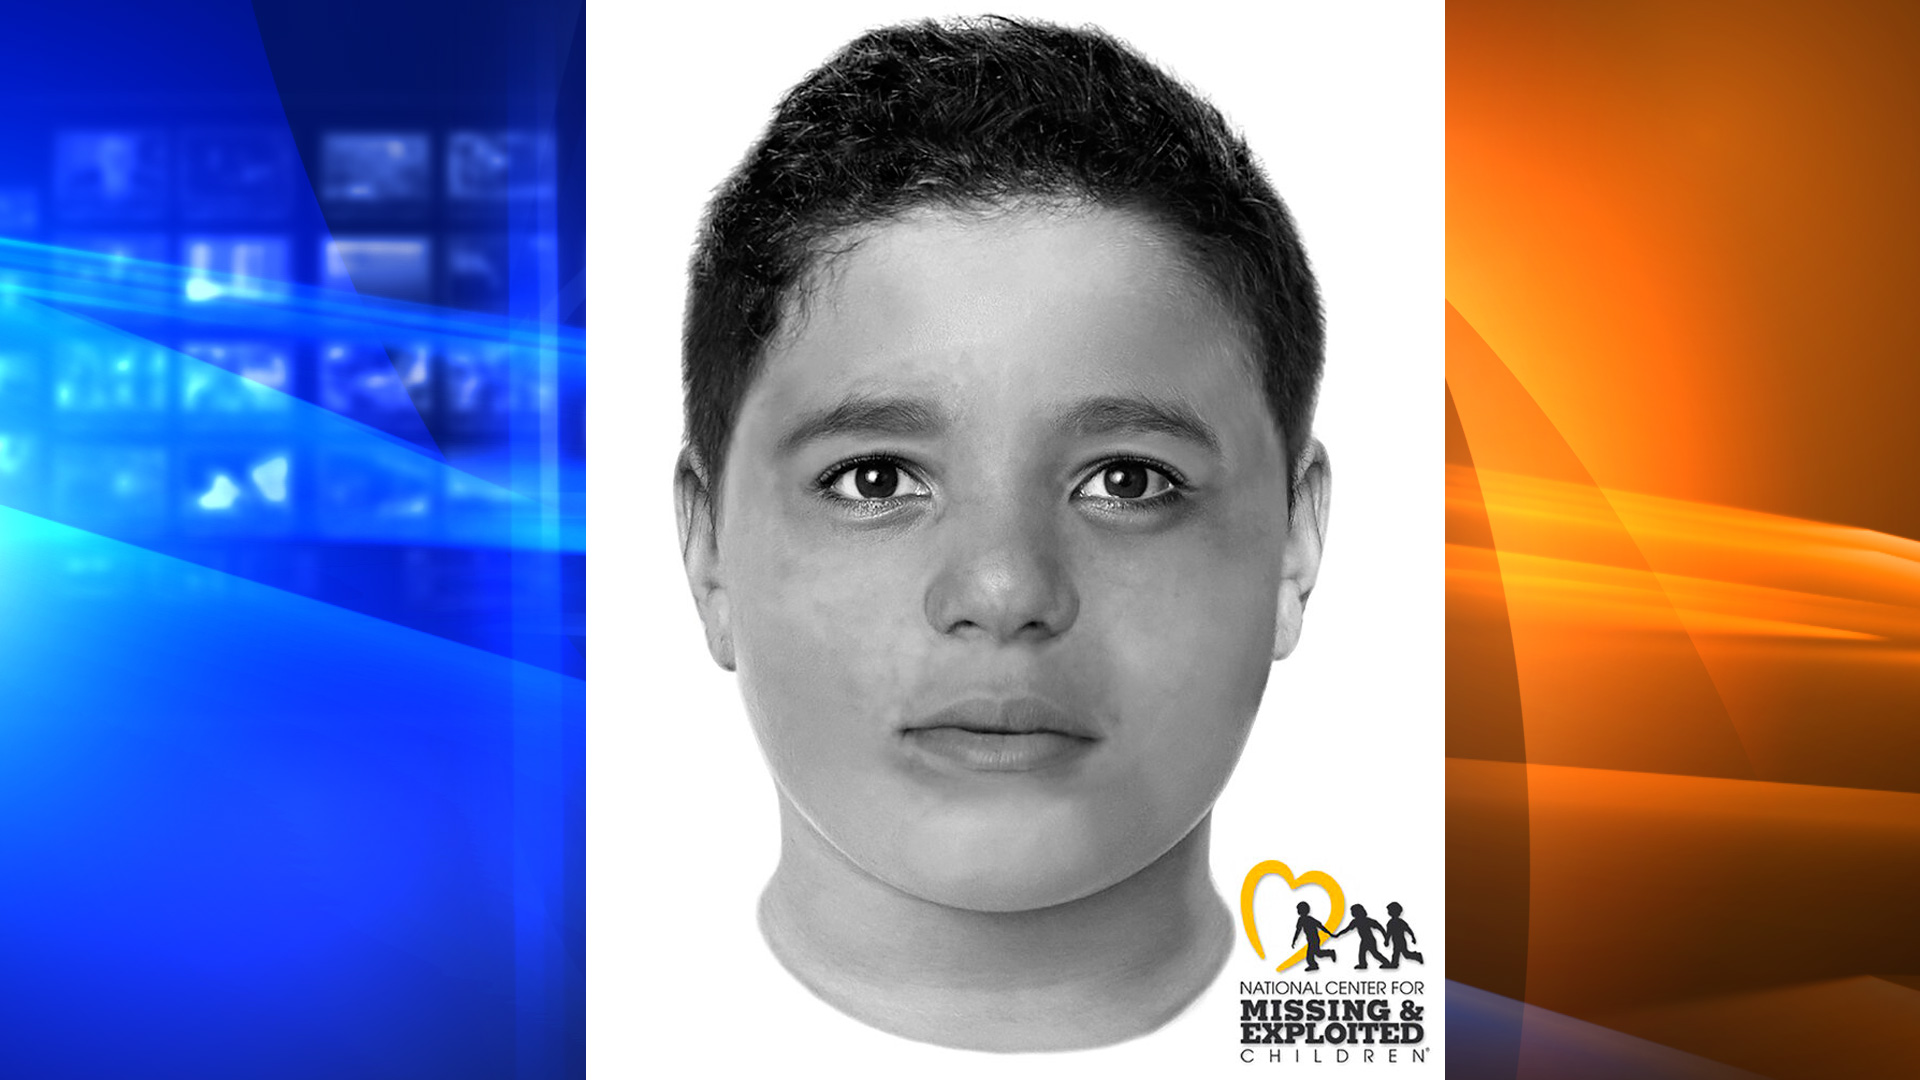 This image provided by the Las Vegas Metropolitan Police Department and created by the National Center for Missing and Exploited Children depicts a slain boy believed to be between the ages of 8 and 12 whose body was found Friday, May 28, 2021, off a hiking trail between Las Vegas and rural Pahrump, Nevada.